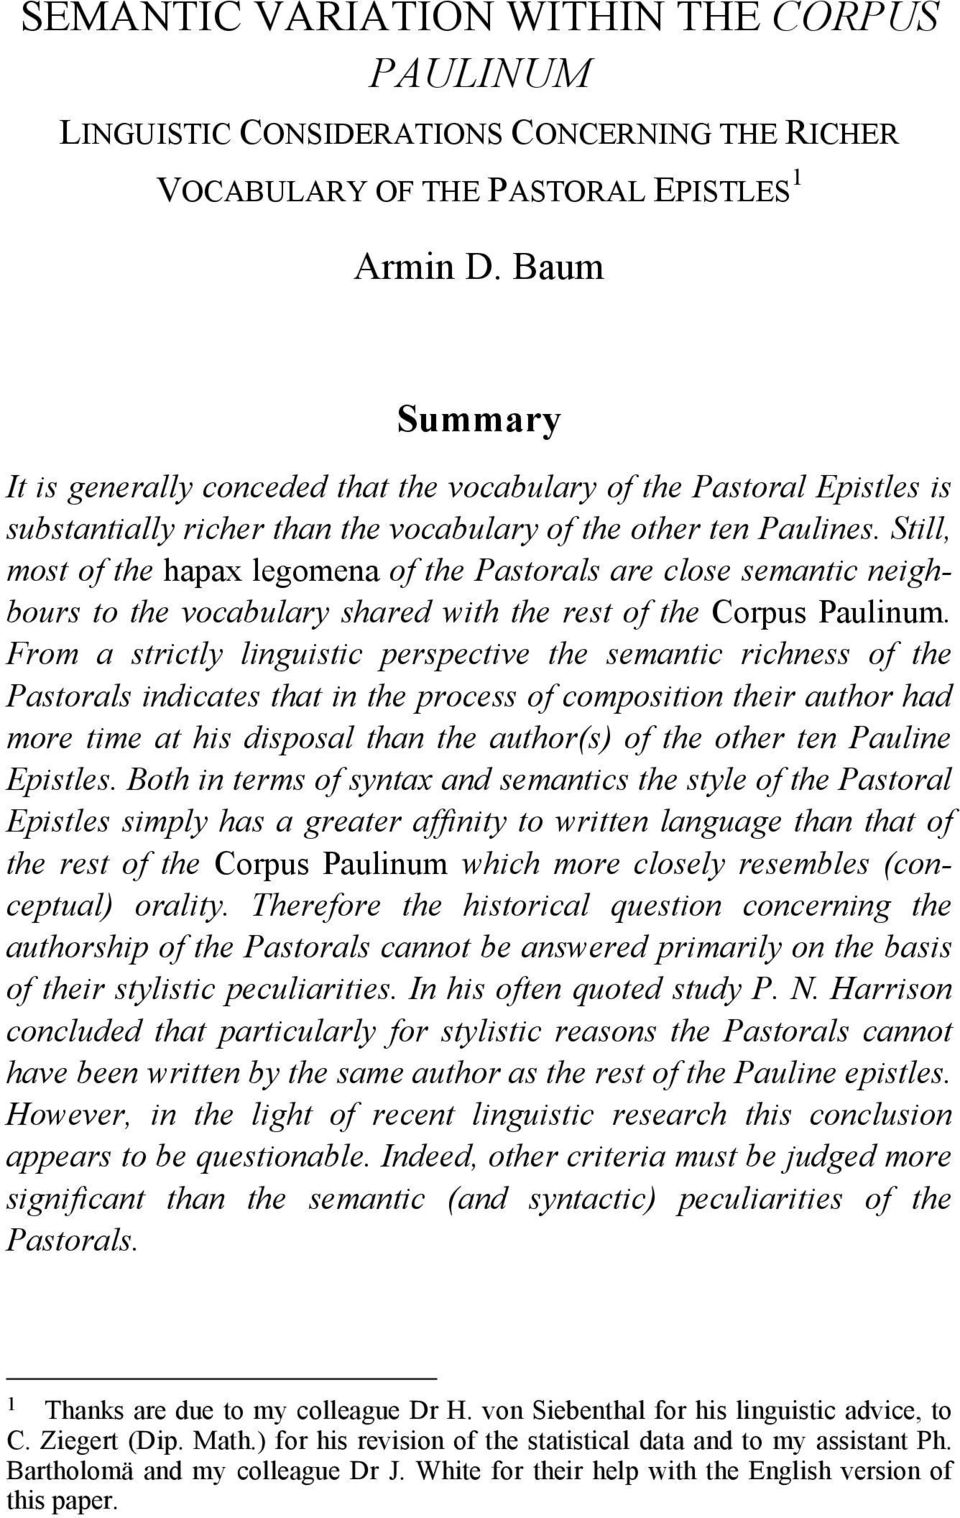 Still, most of the hapax legomena of the Pastorals are close semantic neighbours to the vocabulary shared with the rest of the Corpus Paulinum.